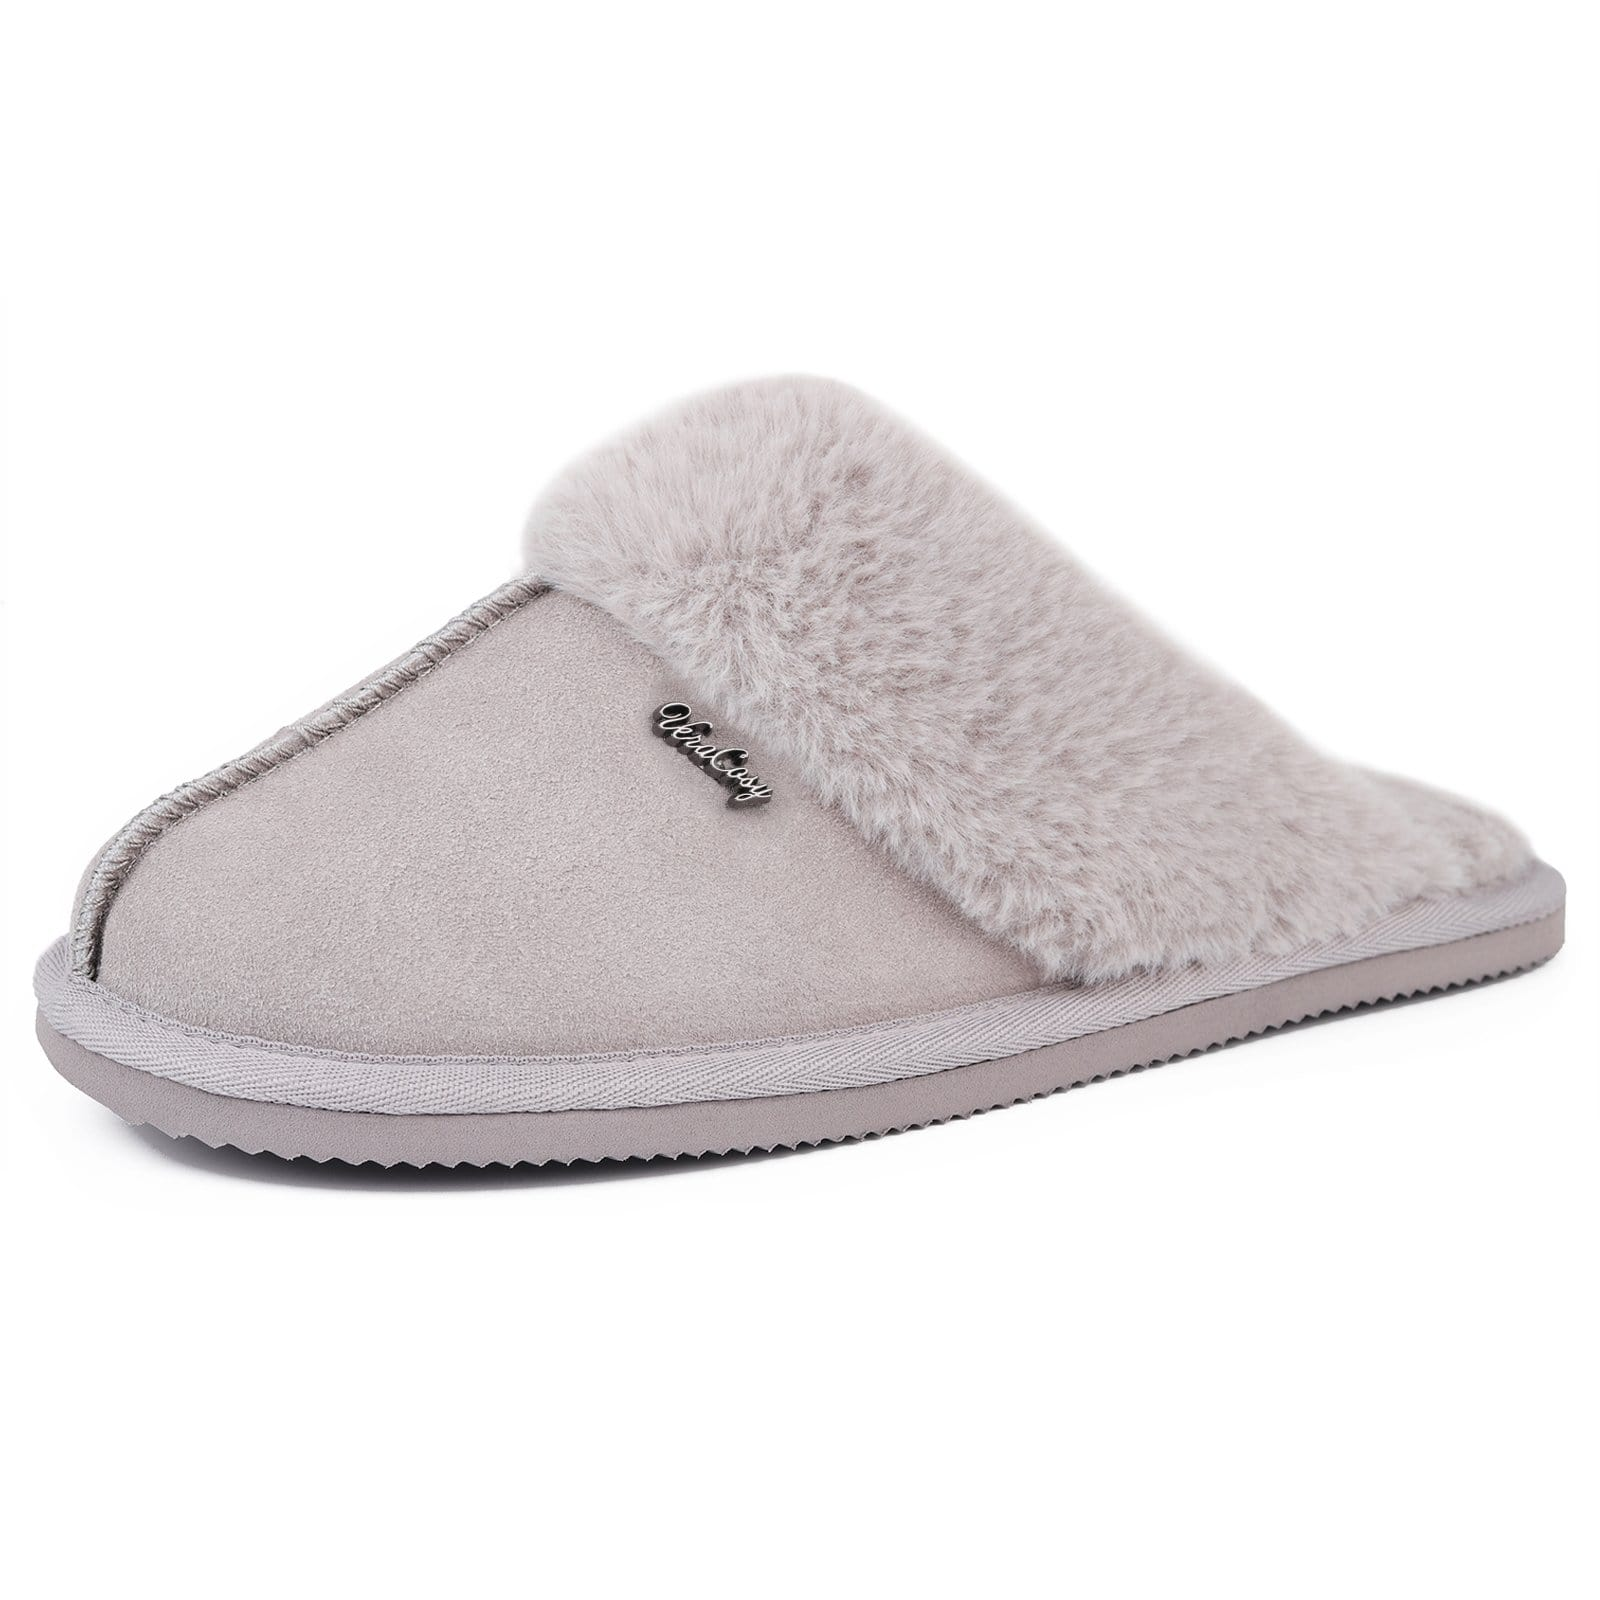 VeraCosy Ladies' Donna Fluffy Genuine Leather Flat Open Back Slippers with Memory Foam